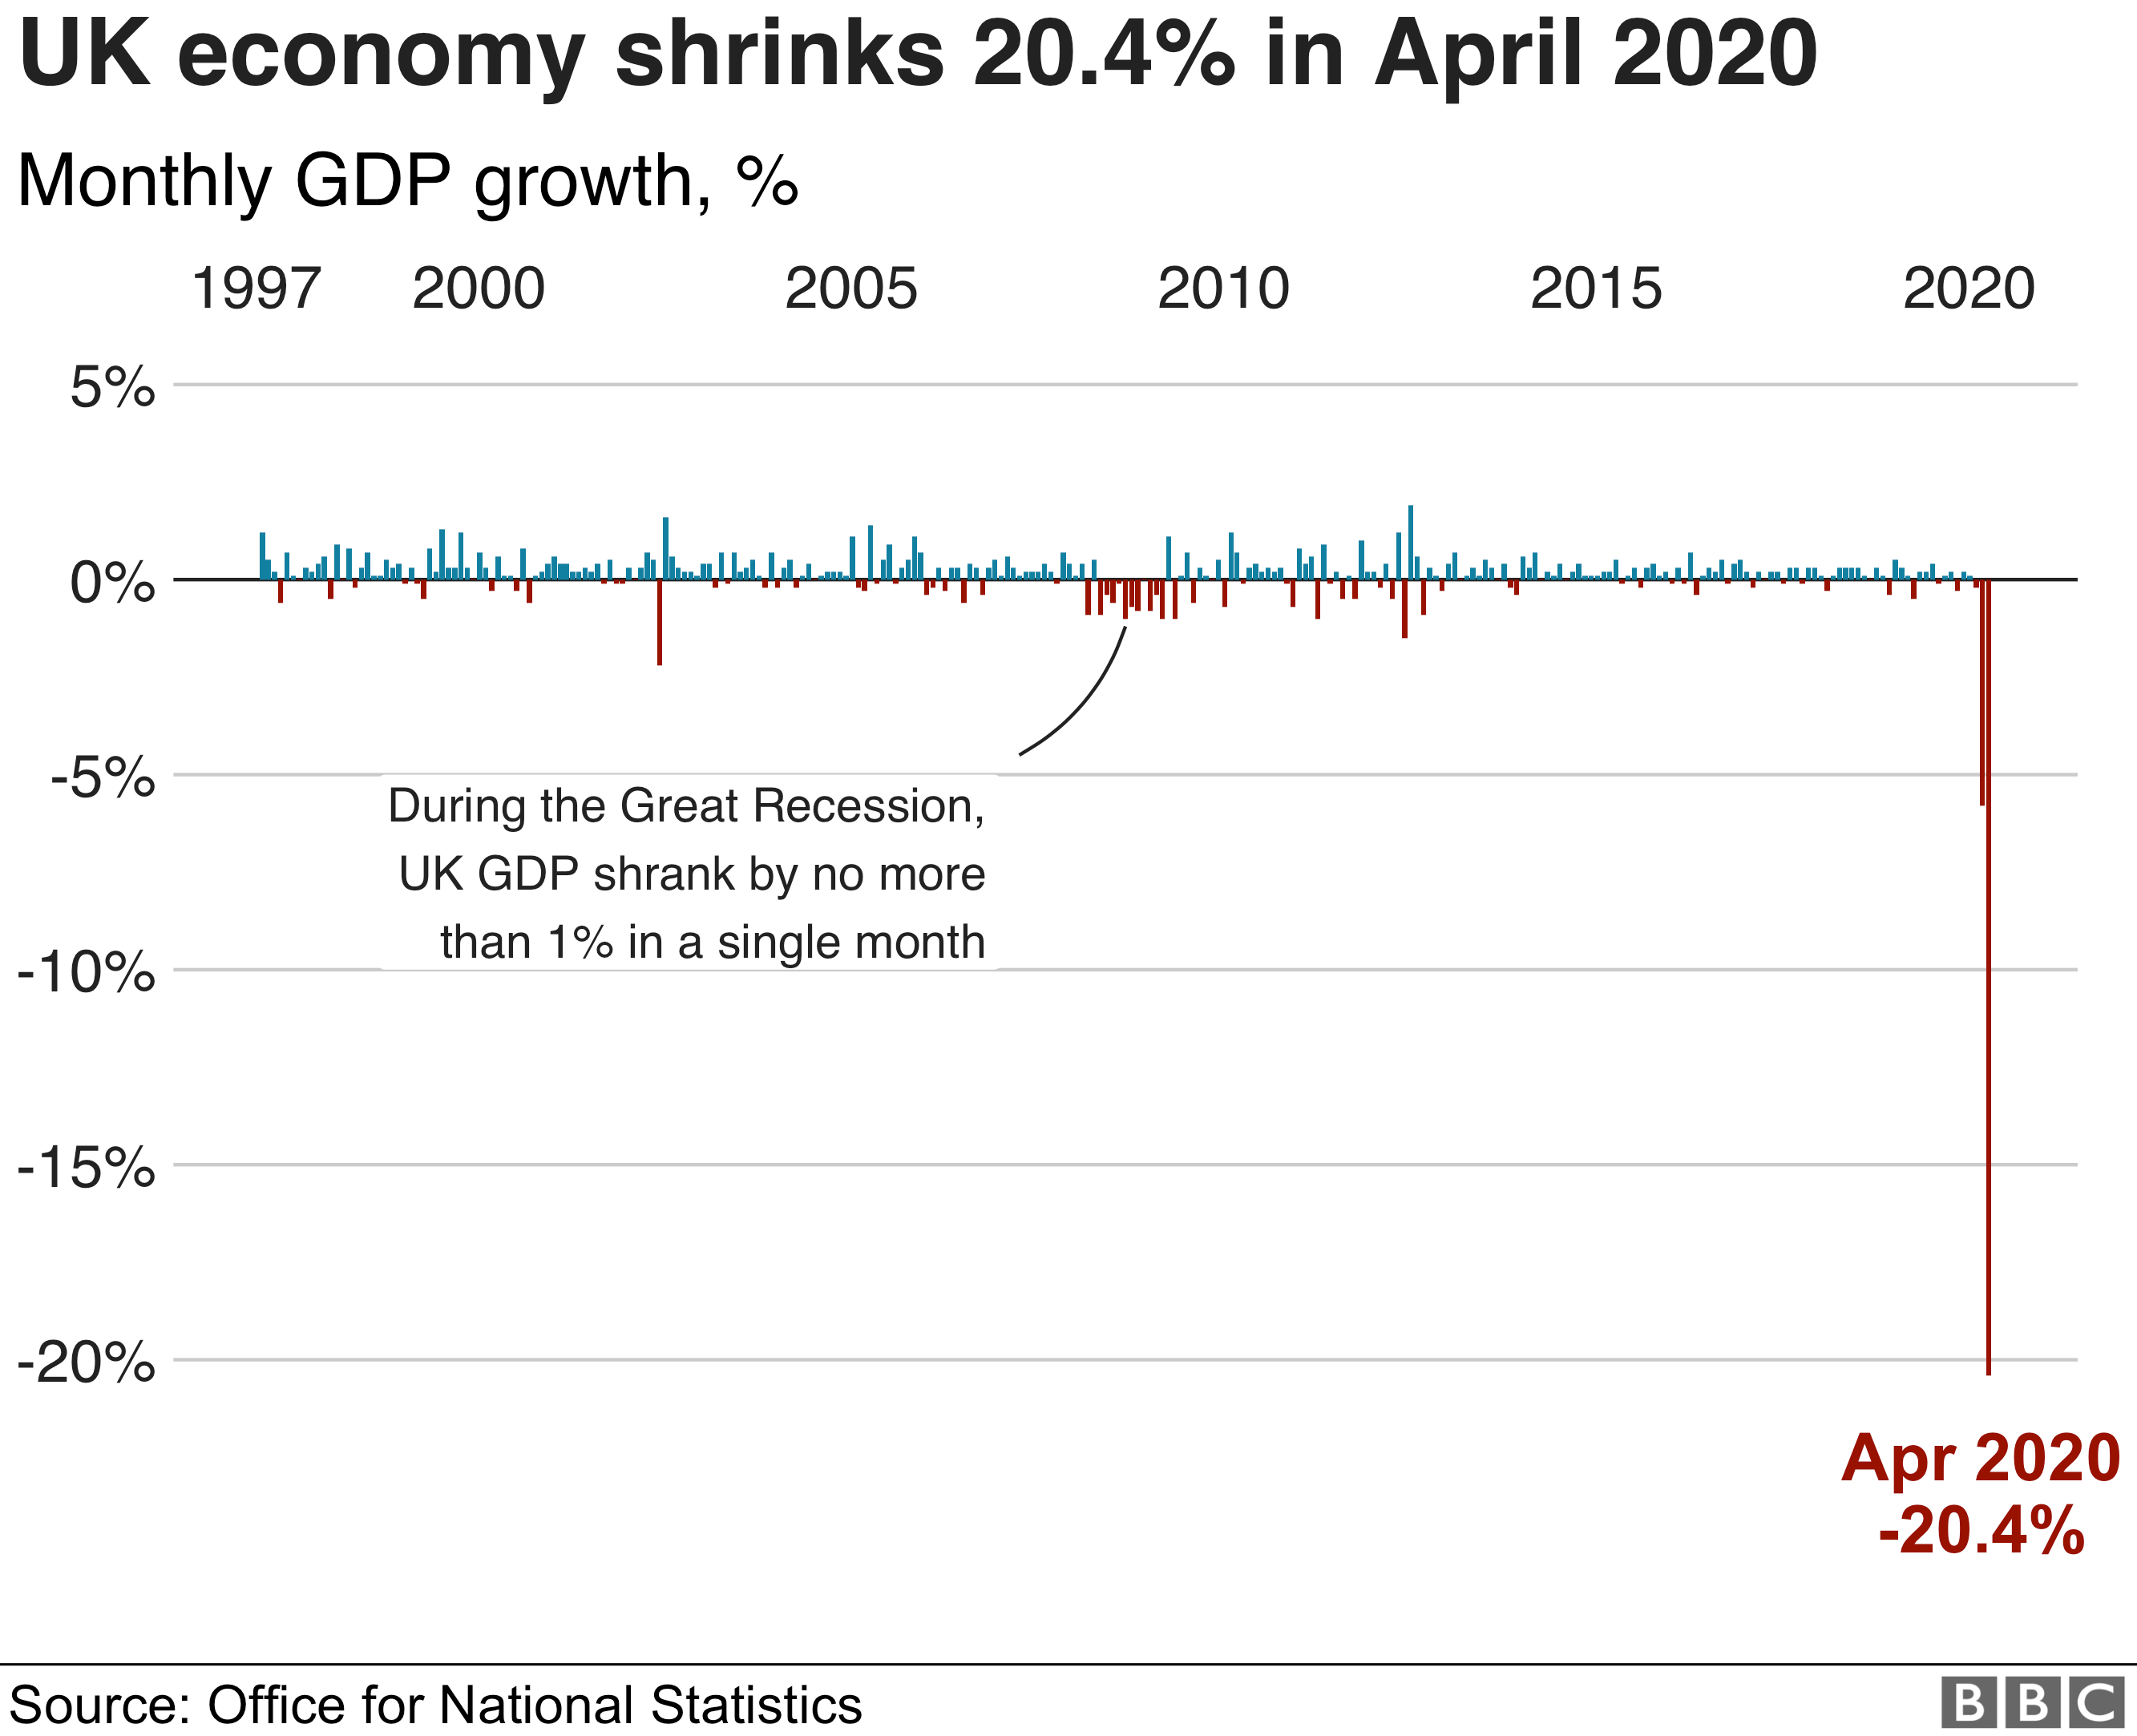 Quarterly GDP growth over time